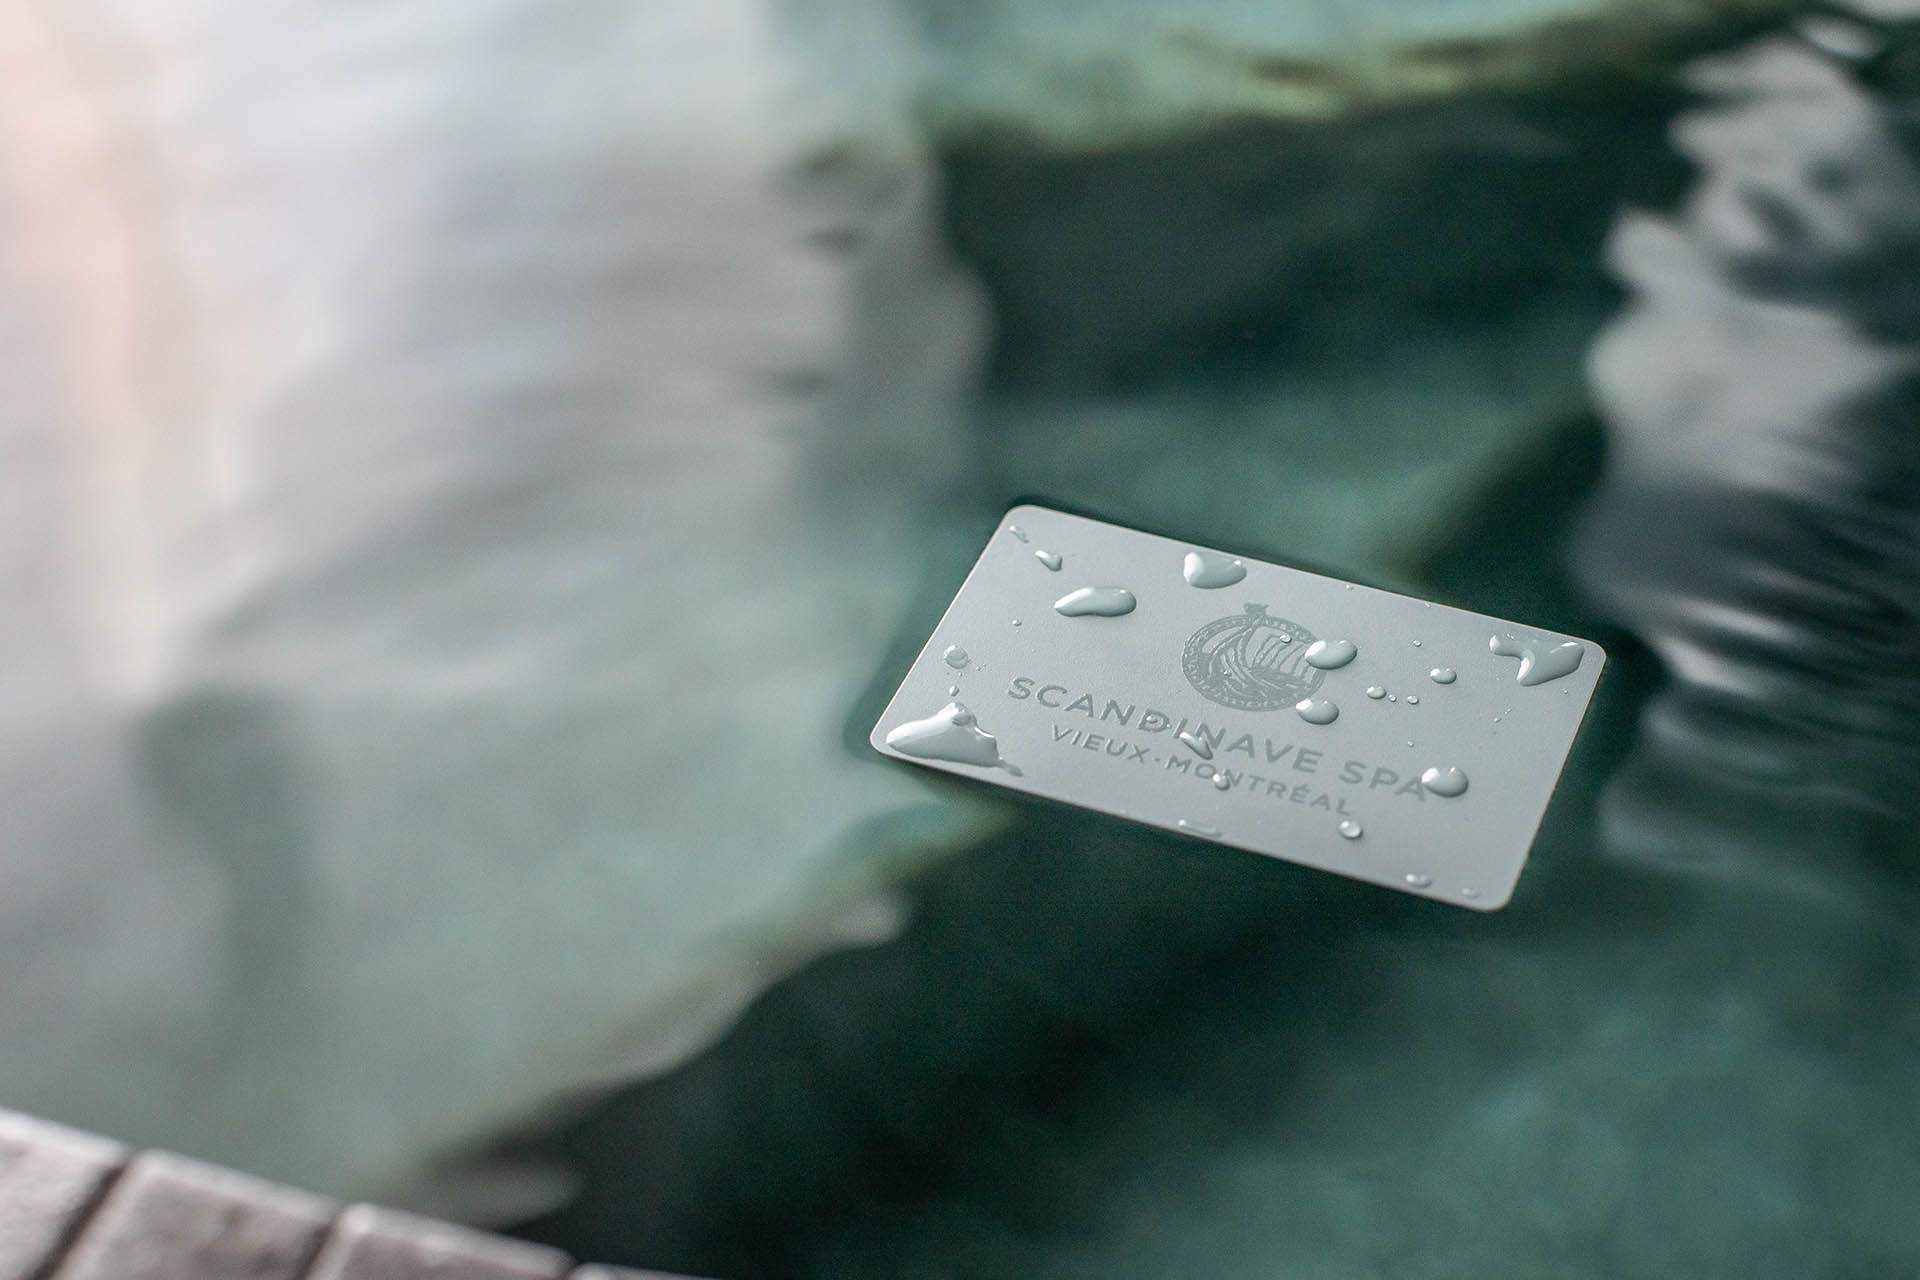 A Scandinave Spa Old Montreal membership card floating on the water.